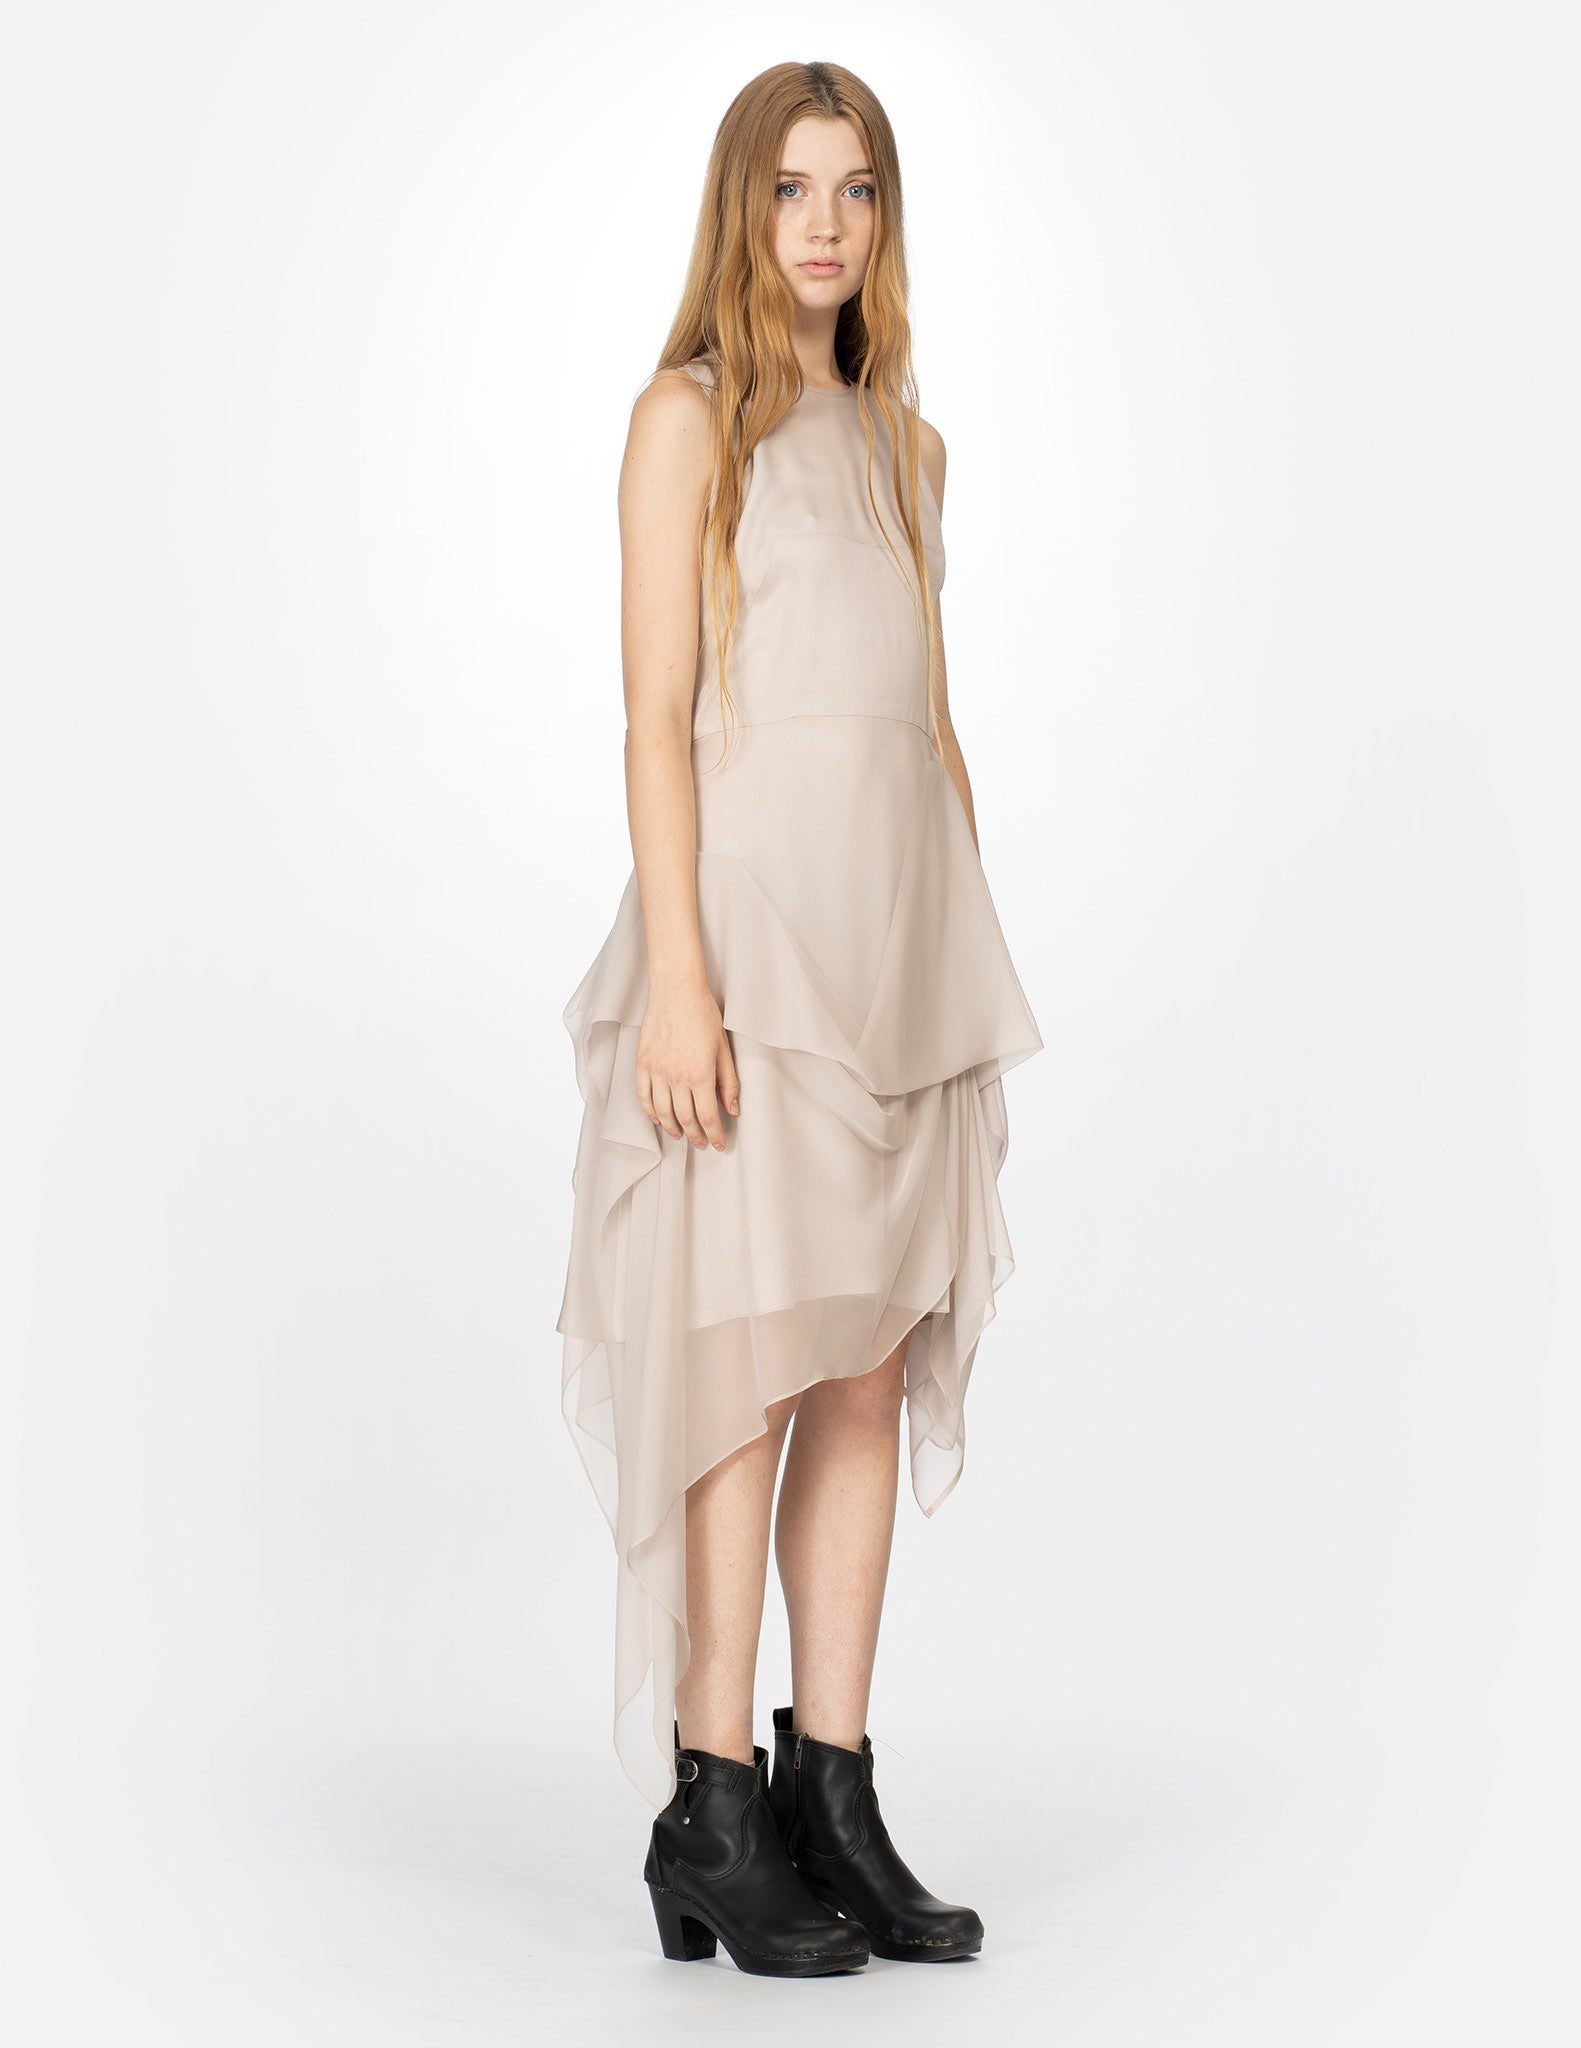 morgane le fay sleeveless silk chiffon dress with a draped skirt, crew neckline and waist tie. made in new york.